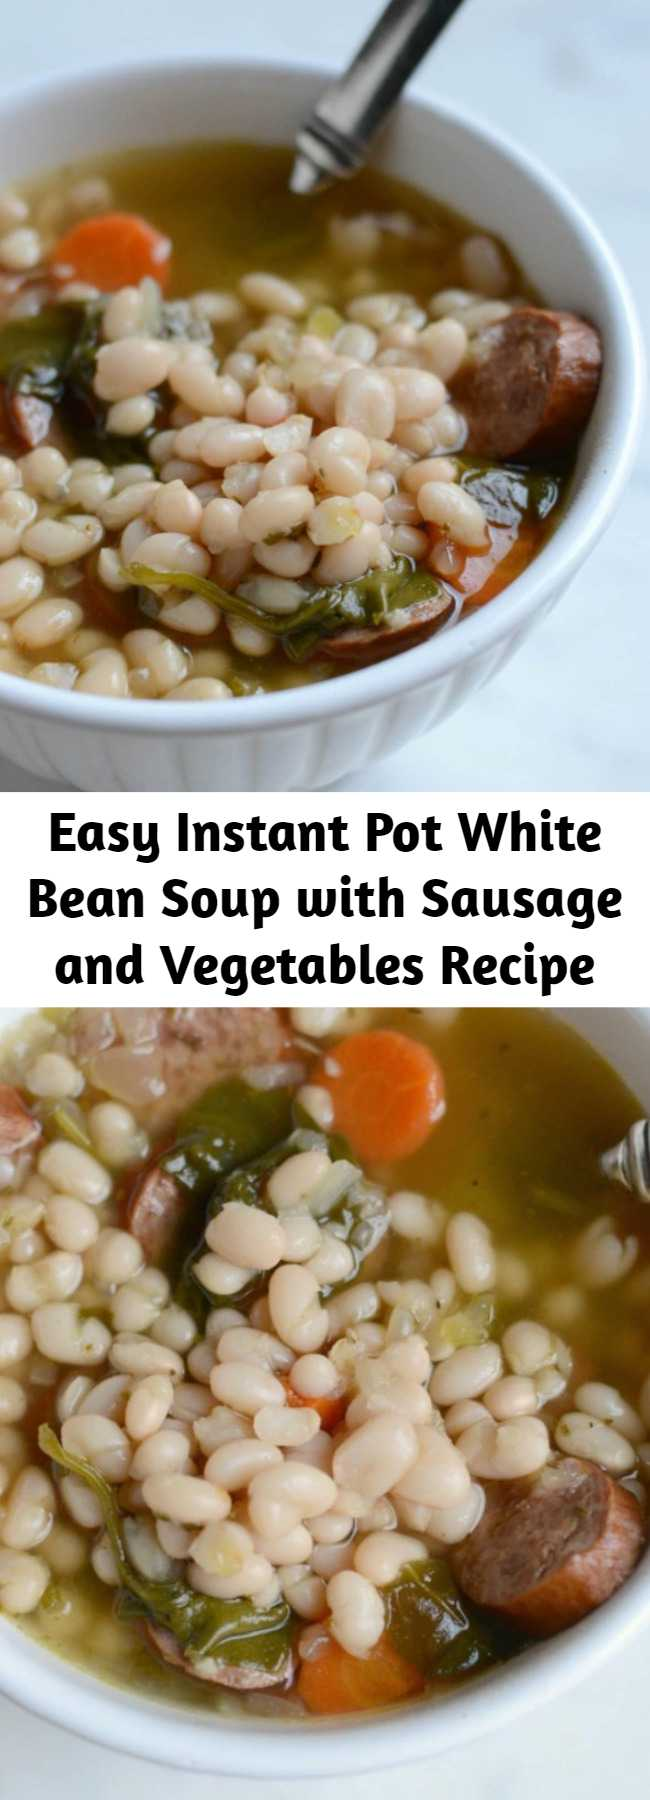 Easy Instant Pot White Bean Soup with Sausage and Vegetables Recipe - This Instant Pot soup recipe is easy, delicious and hassle-free. Made with smoked sausage, white beans, and vegetables with an herb-infused broth.